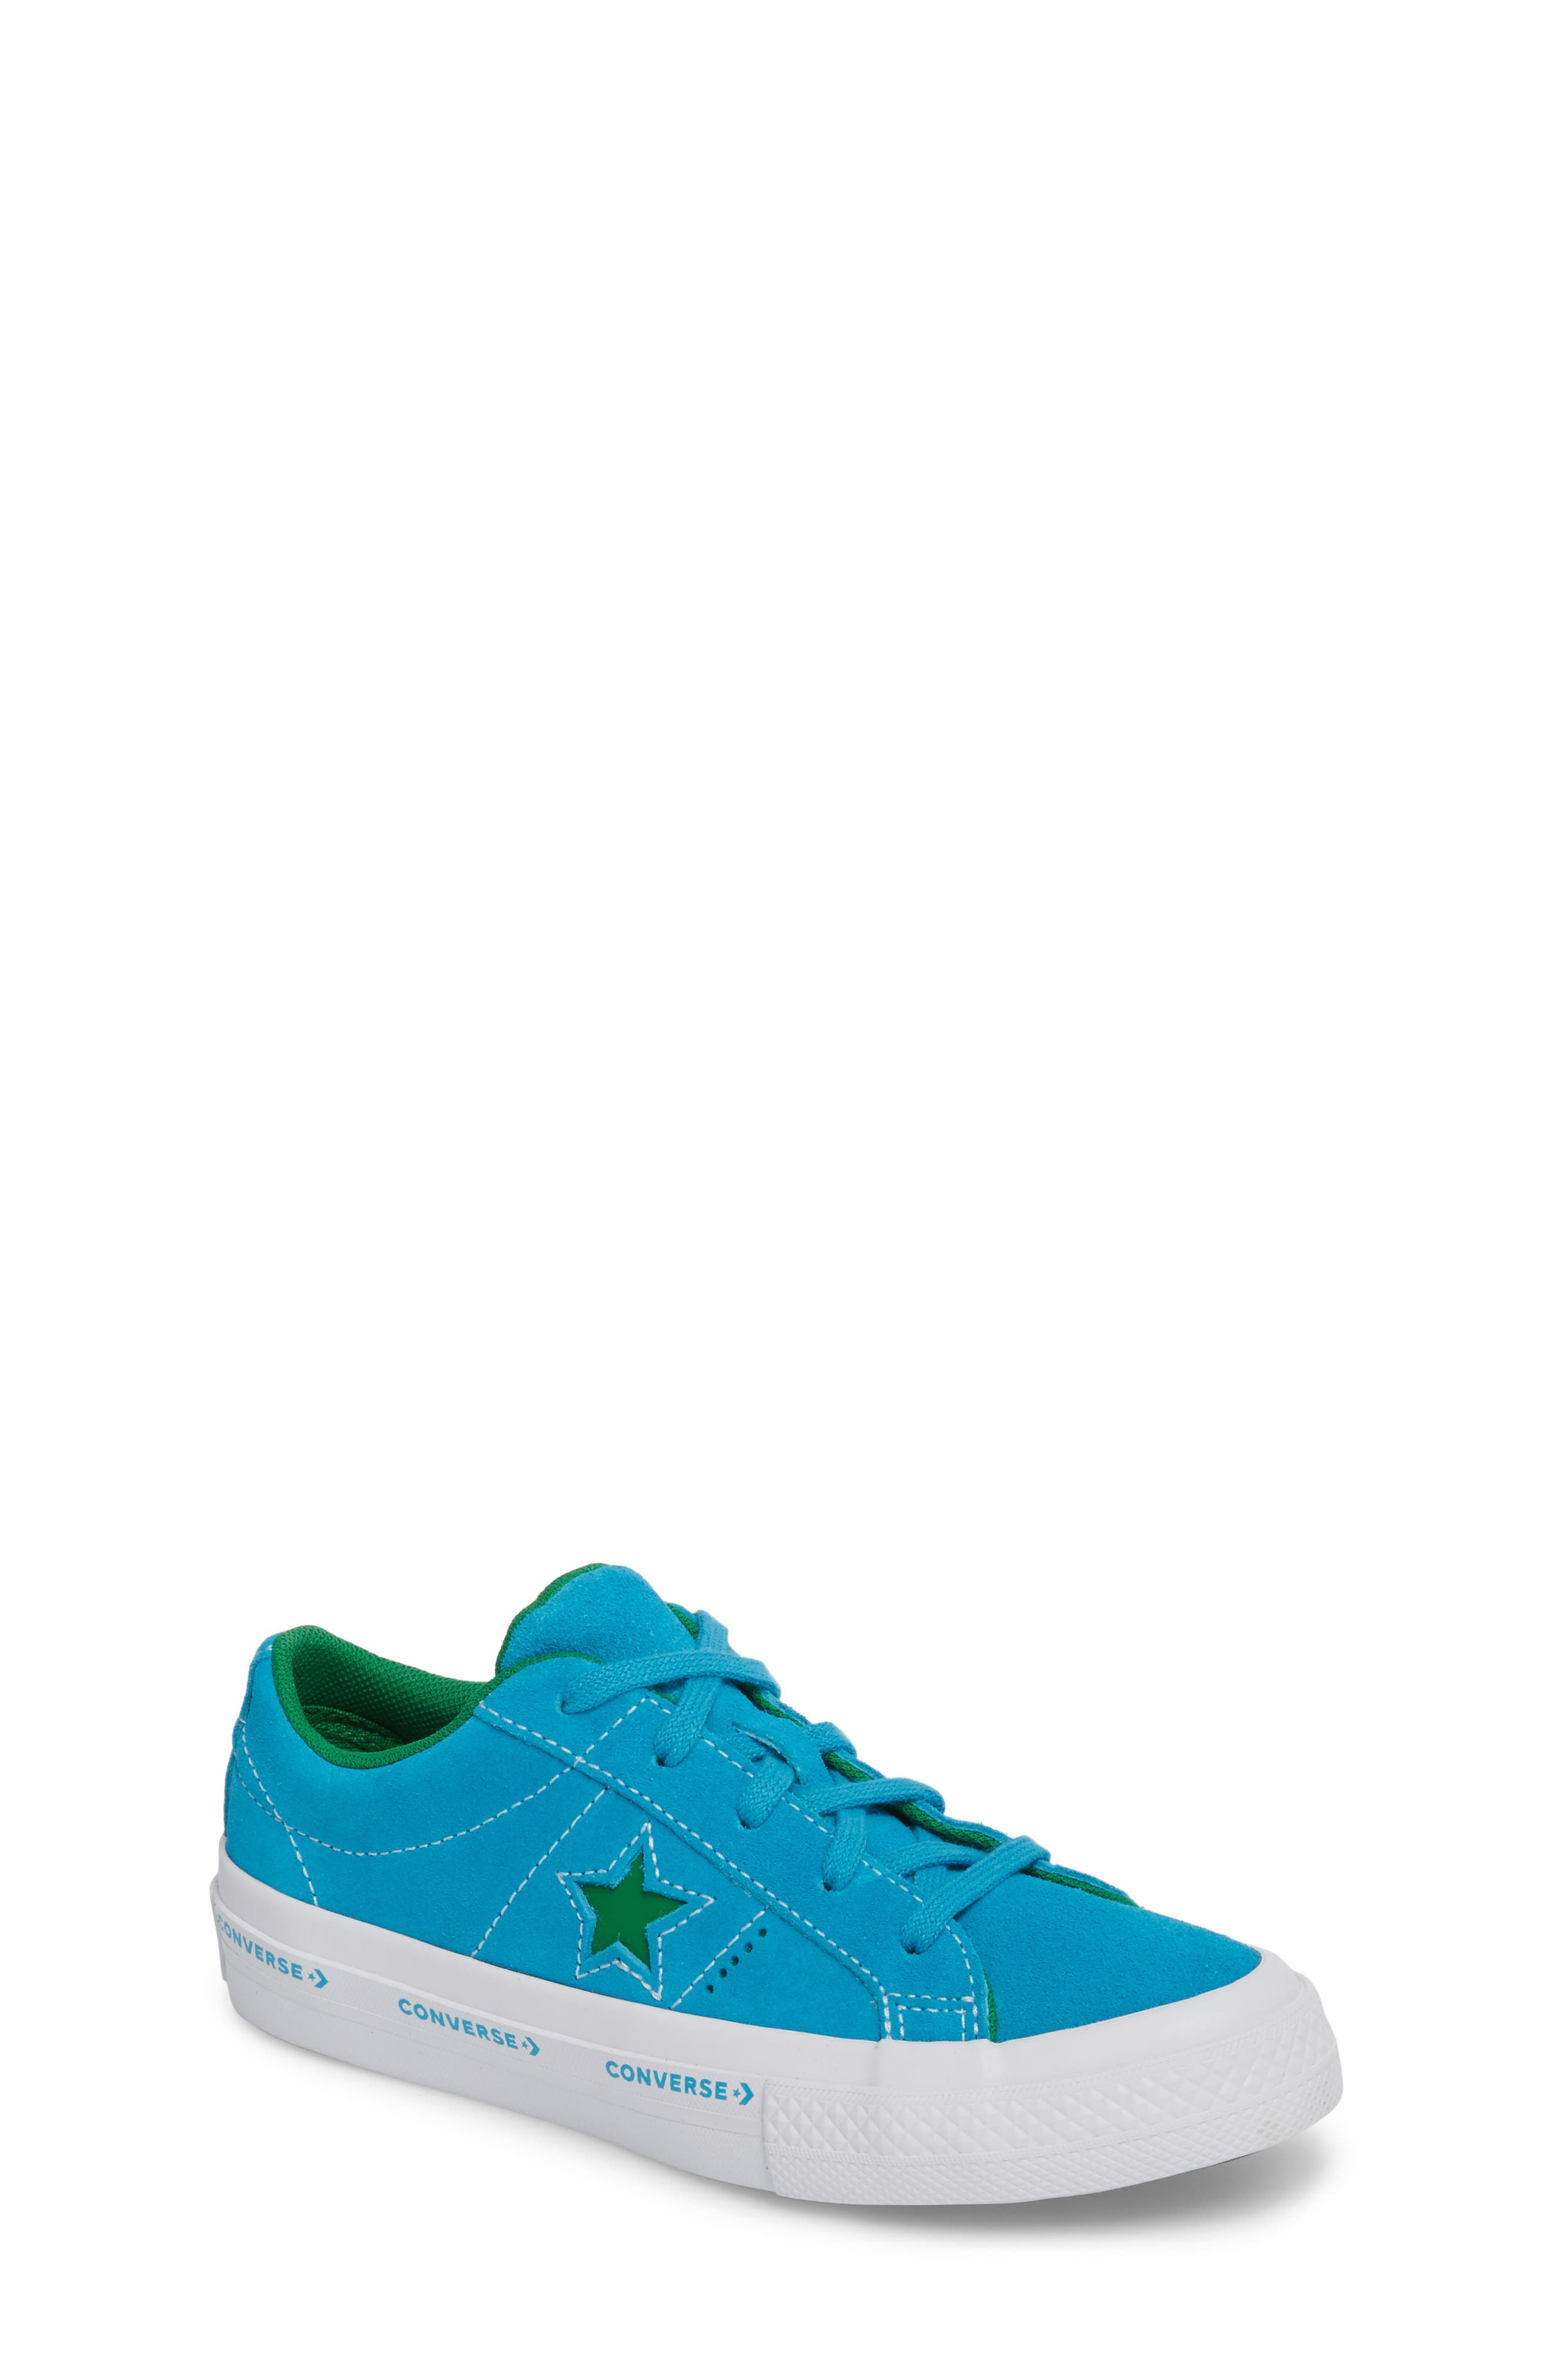 Chuck Taylor<sup>®</sup> All Star<sup>®</sup> One Star Leather Platform Sneaker,                         Main,                         color, 486